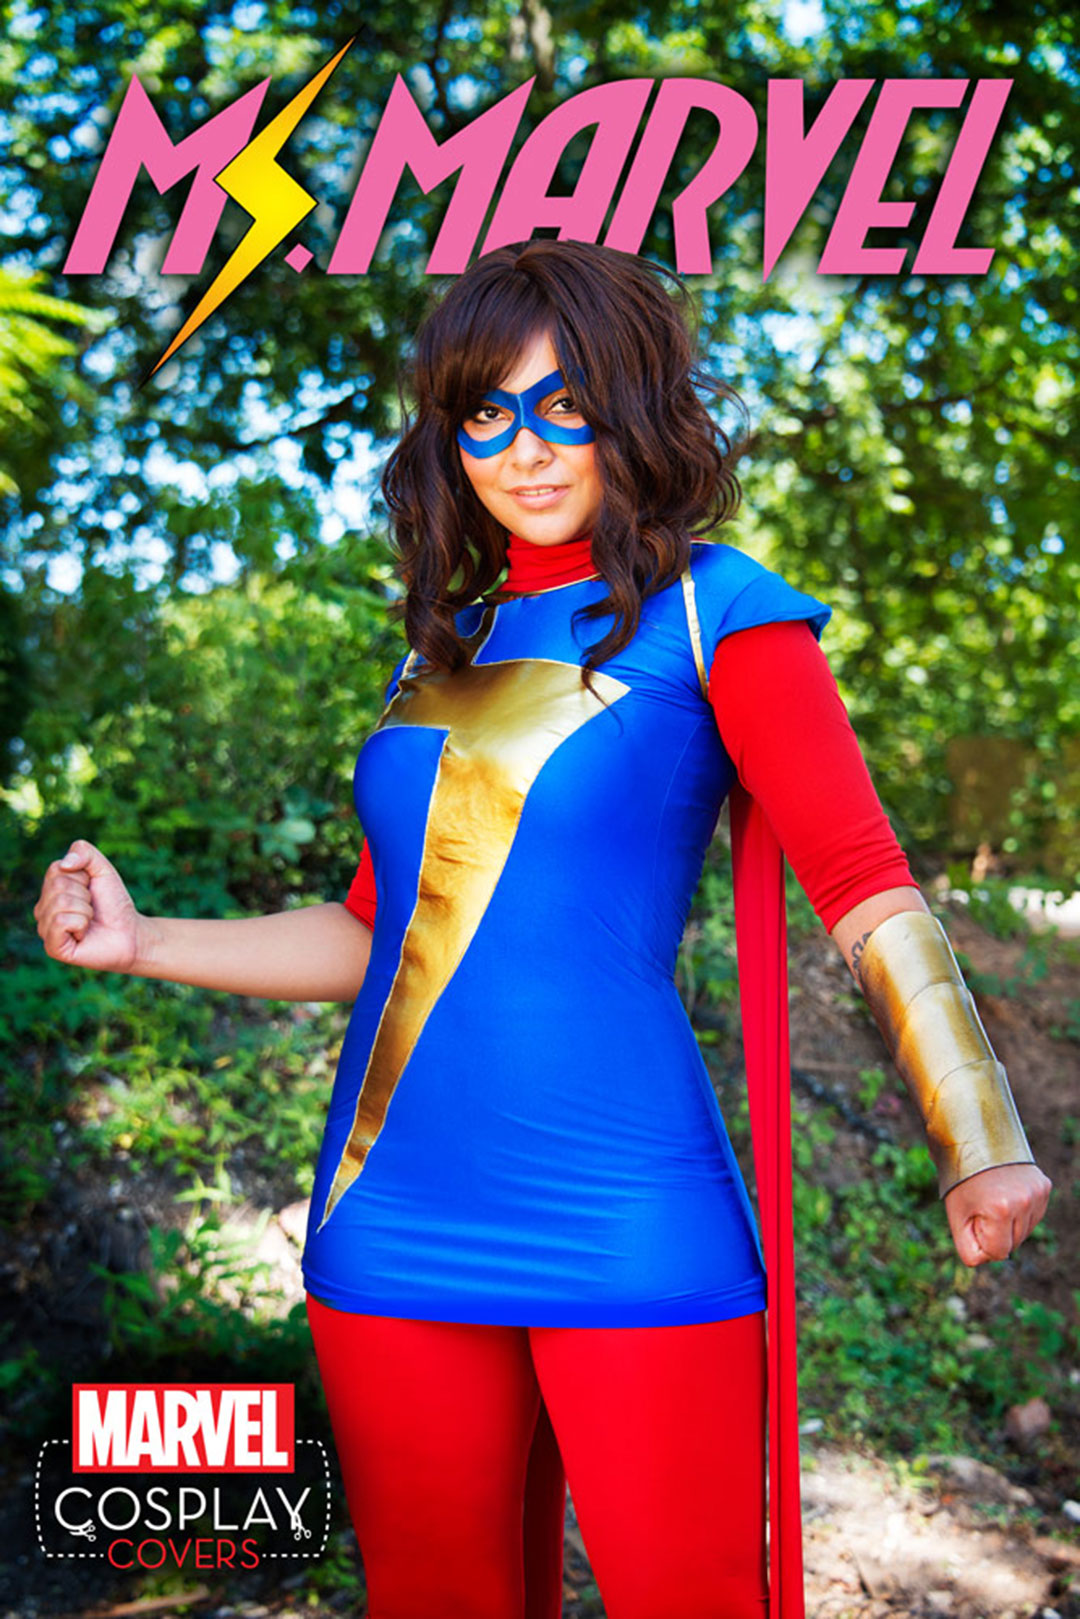 Couverture-Marvel-cosplay (7)